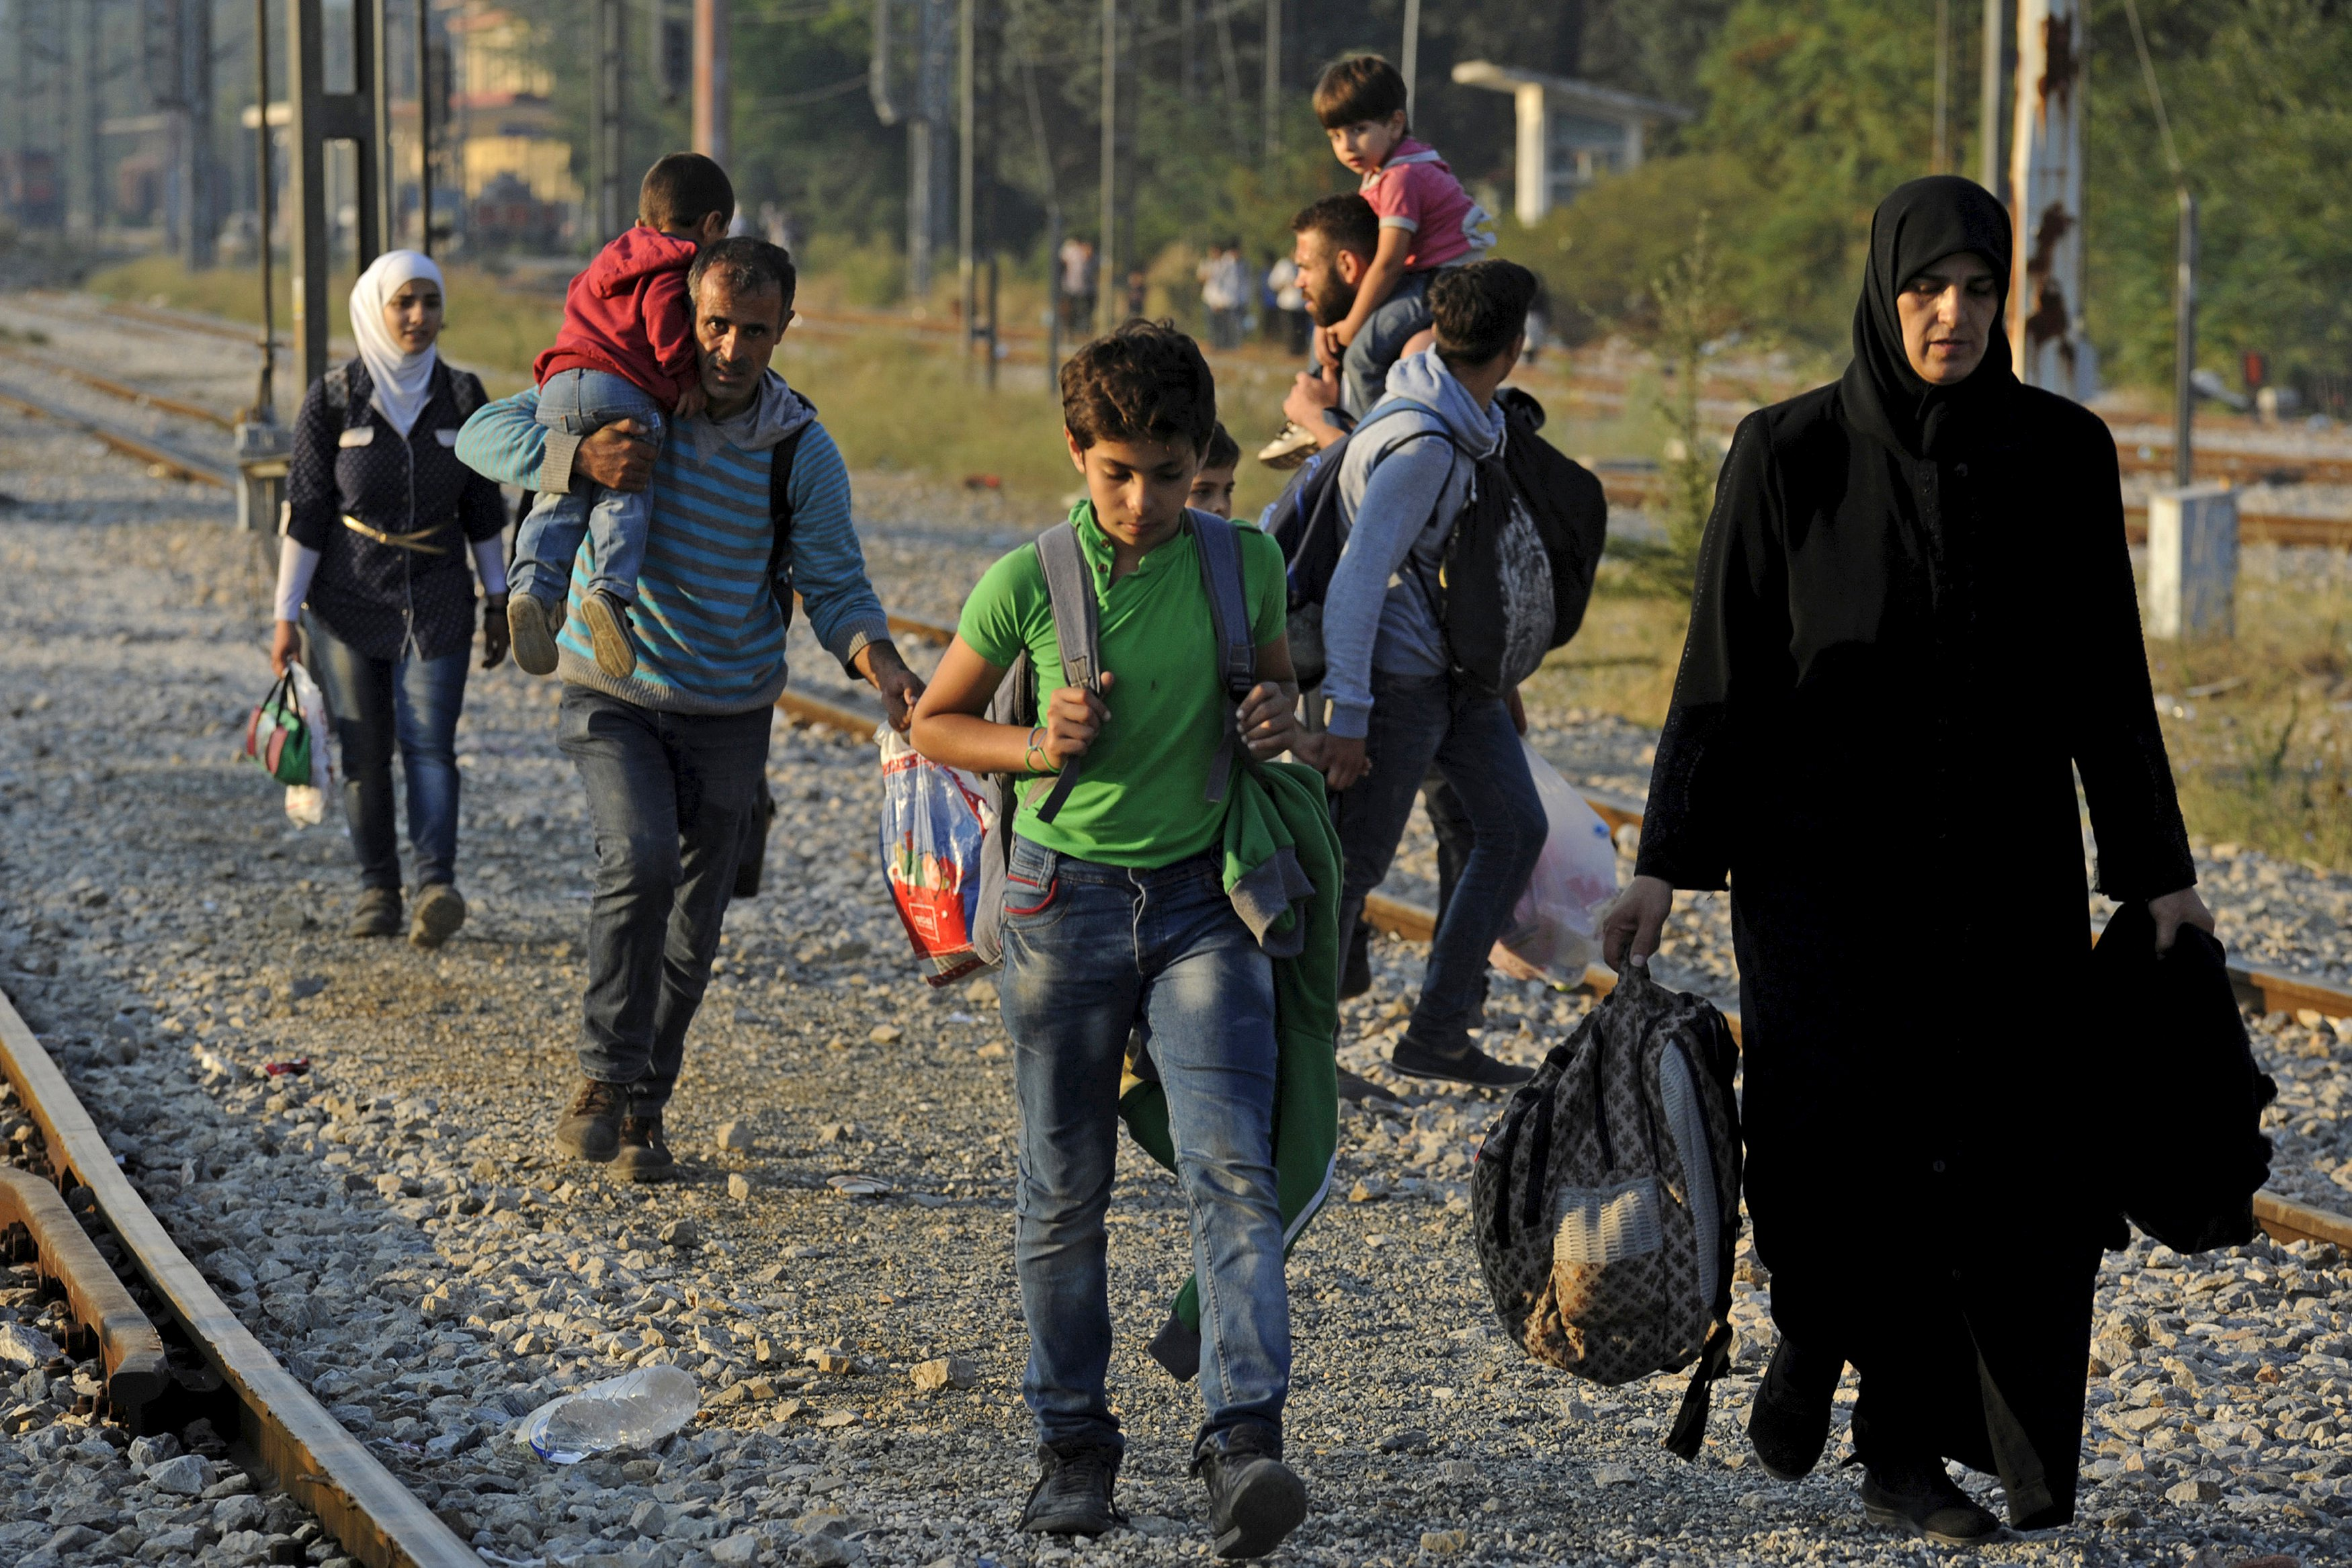 Refugee crisis: Greece will cope with plan B (and patience)